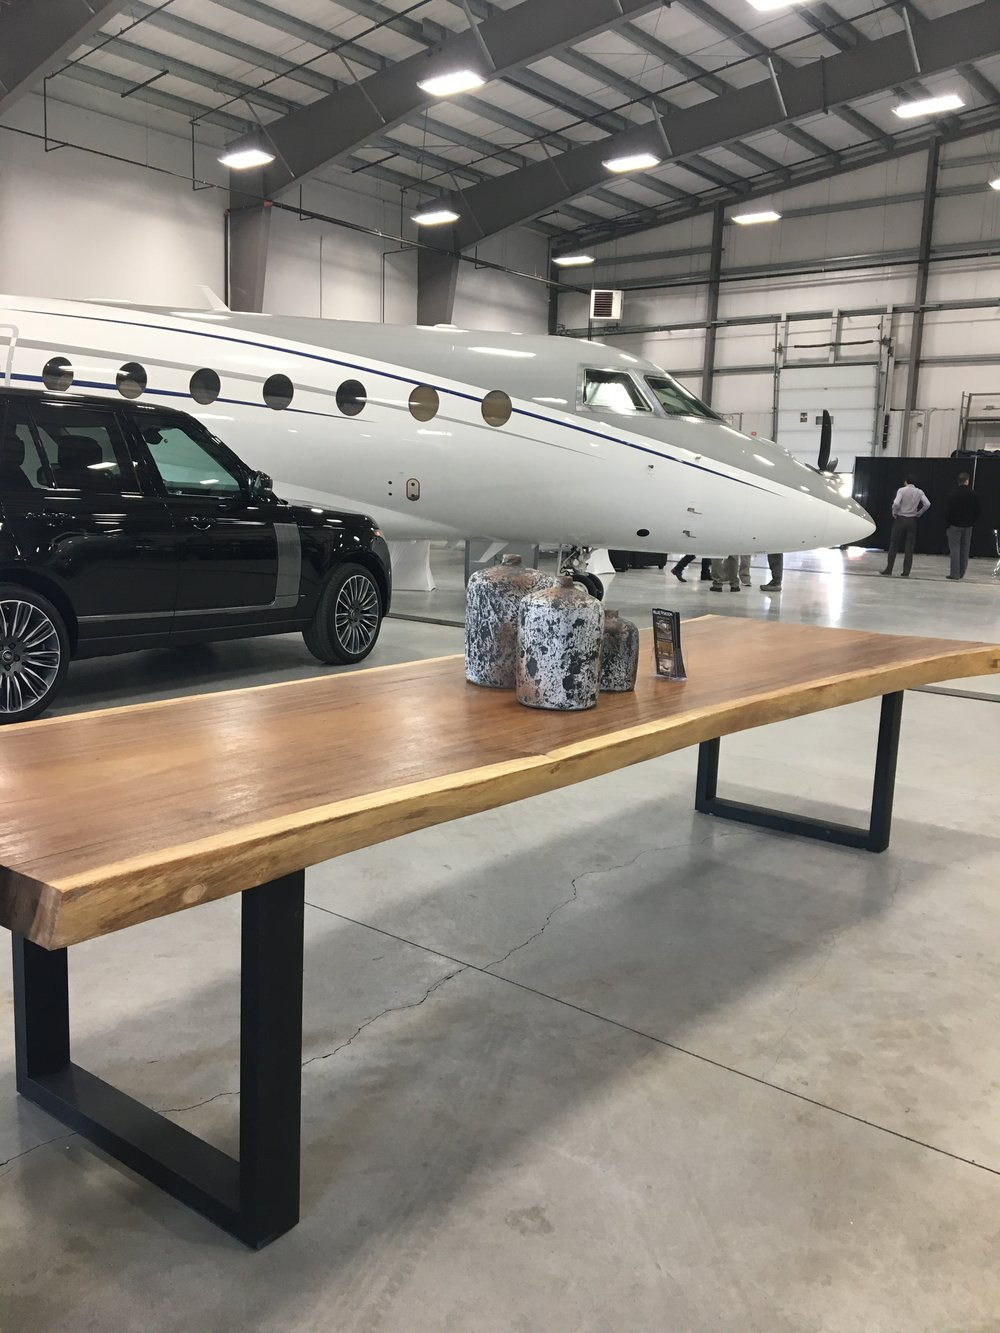 Majestic Live Edge Table from Blue Moon, Ranger Rover vehicle and Dassault Falcon private jet.